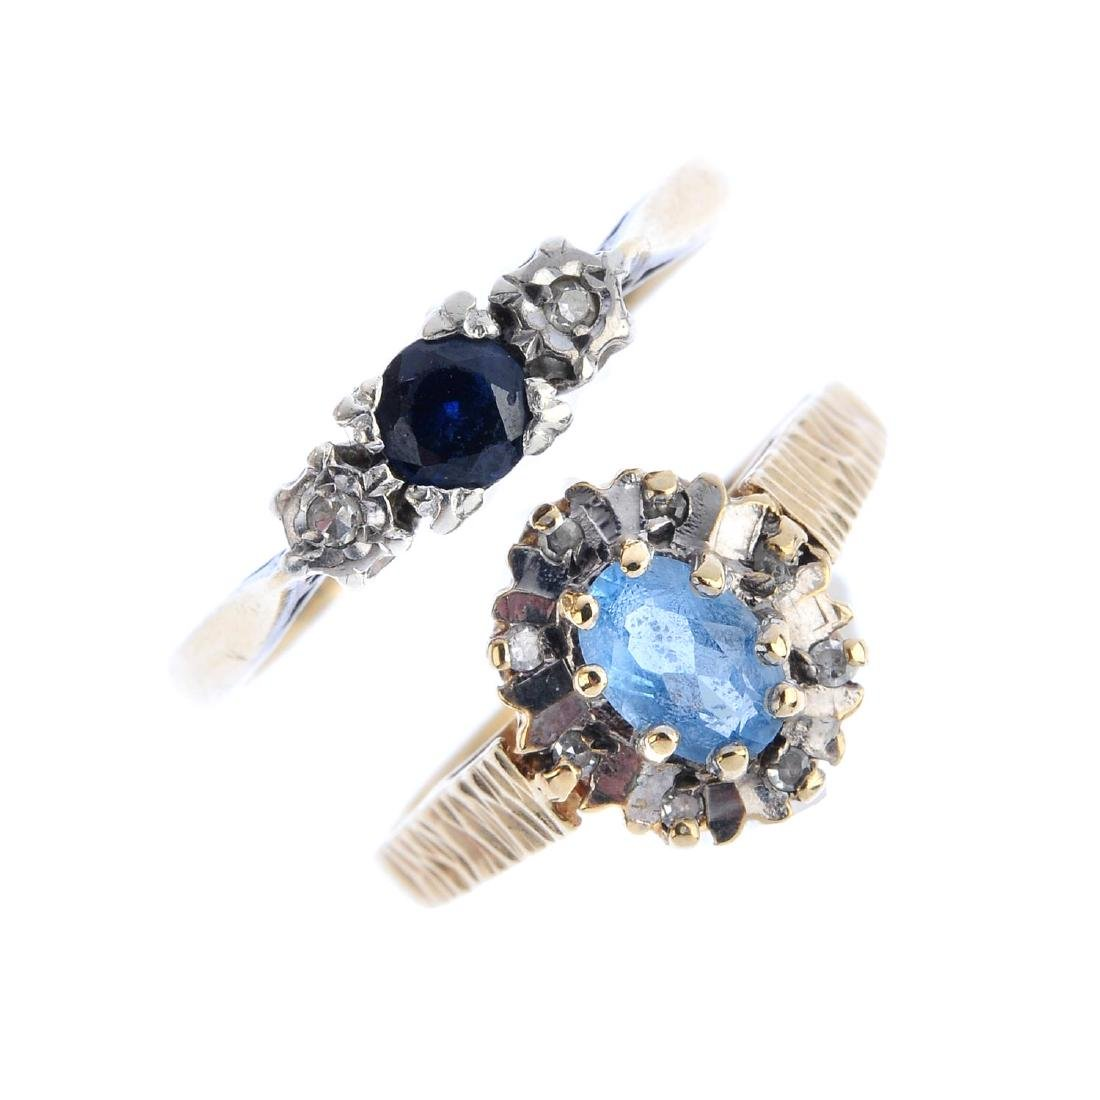 Four 9ct gold gem-set rings. To include a sapphire and